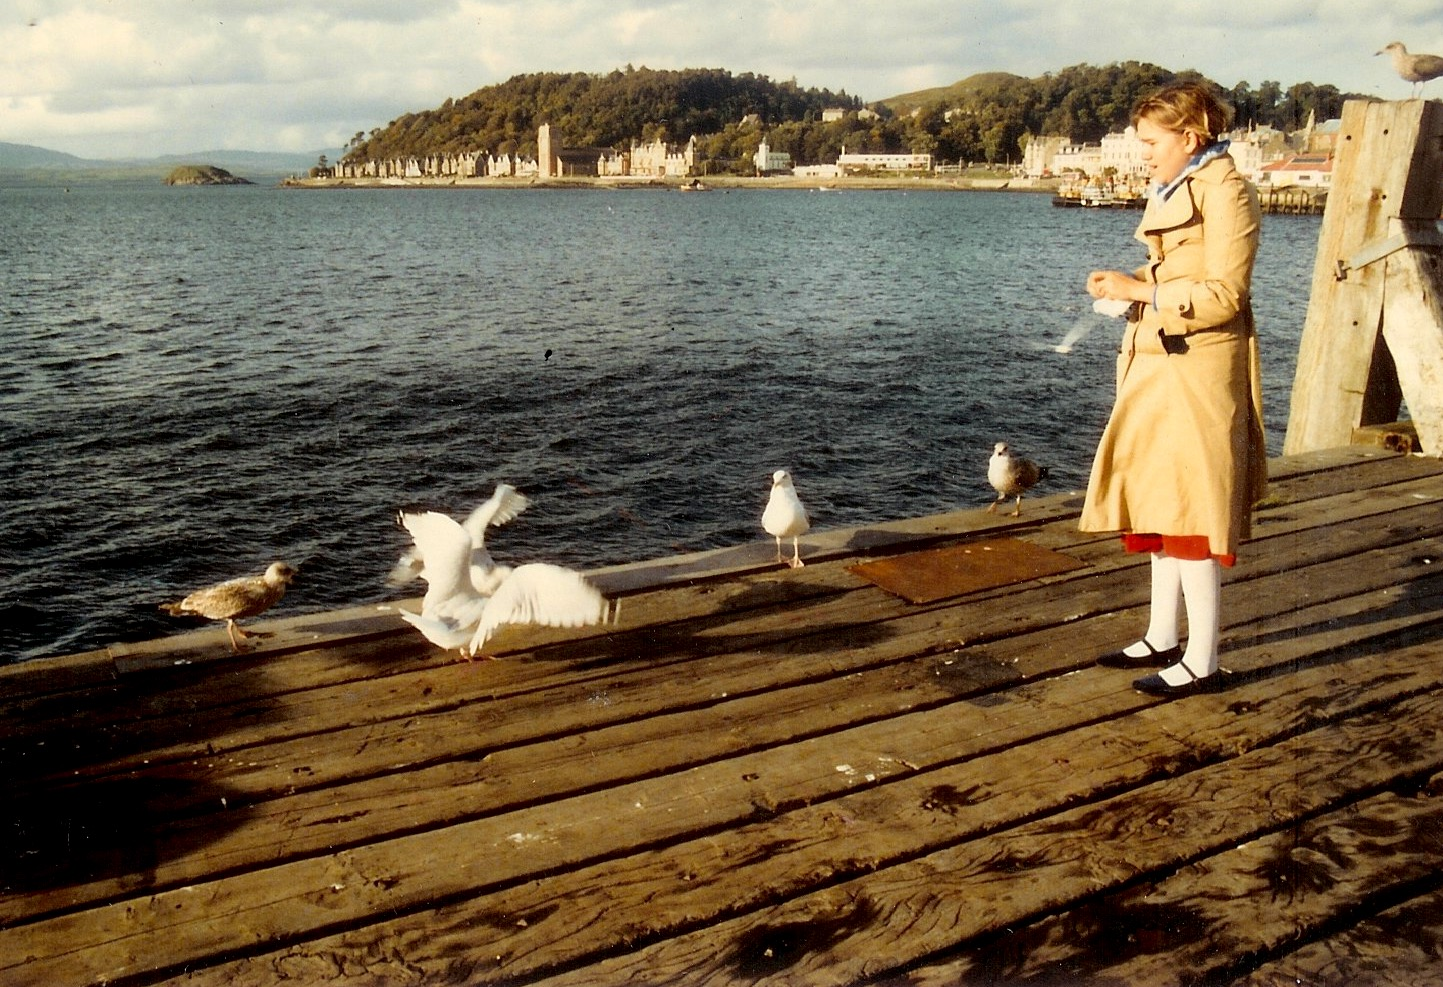 Back in 1984, we started our honeymoon in Edinburgh, and got as far as Oban, on the west coast of Scotland. Oban is on the Firth of Lorn, and Beth had fun feeding the gulls.